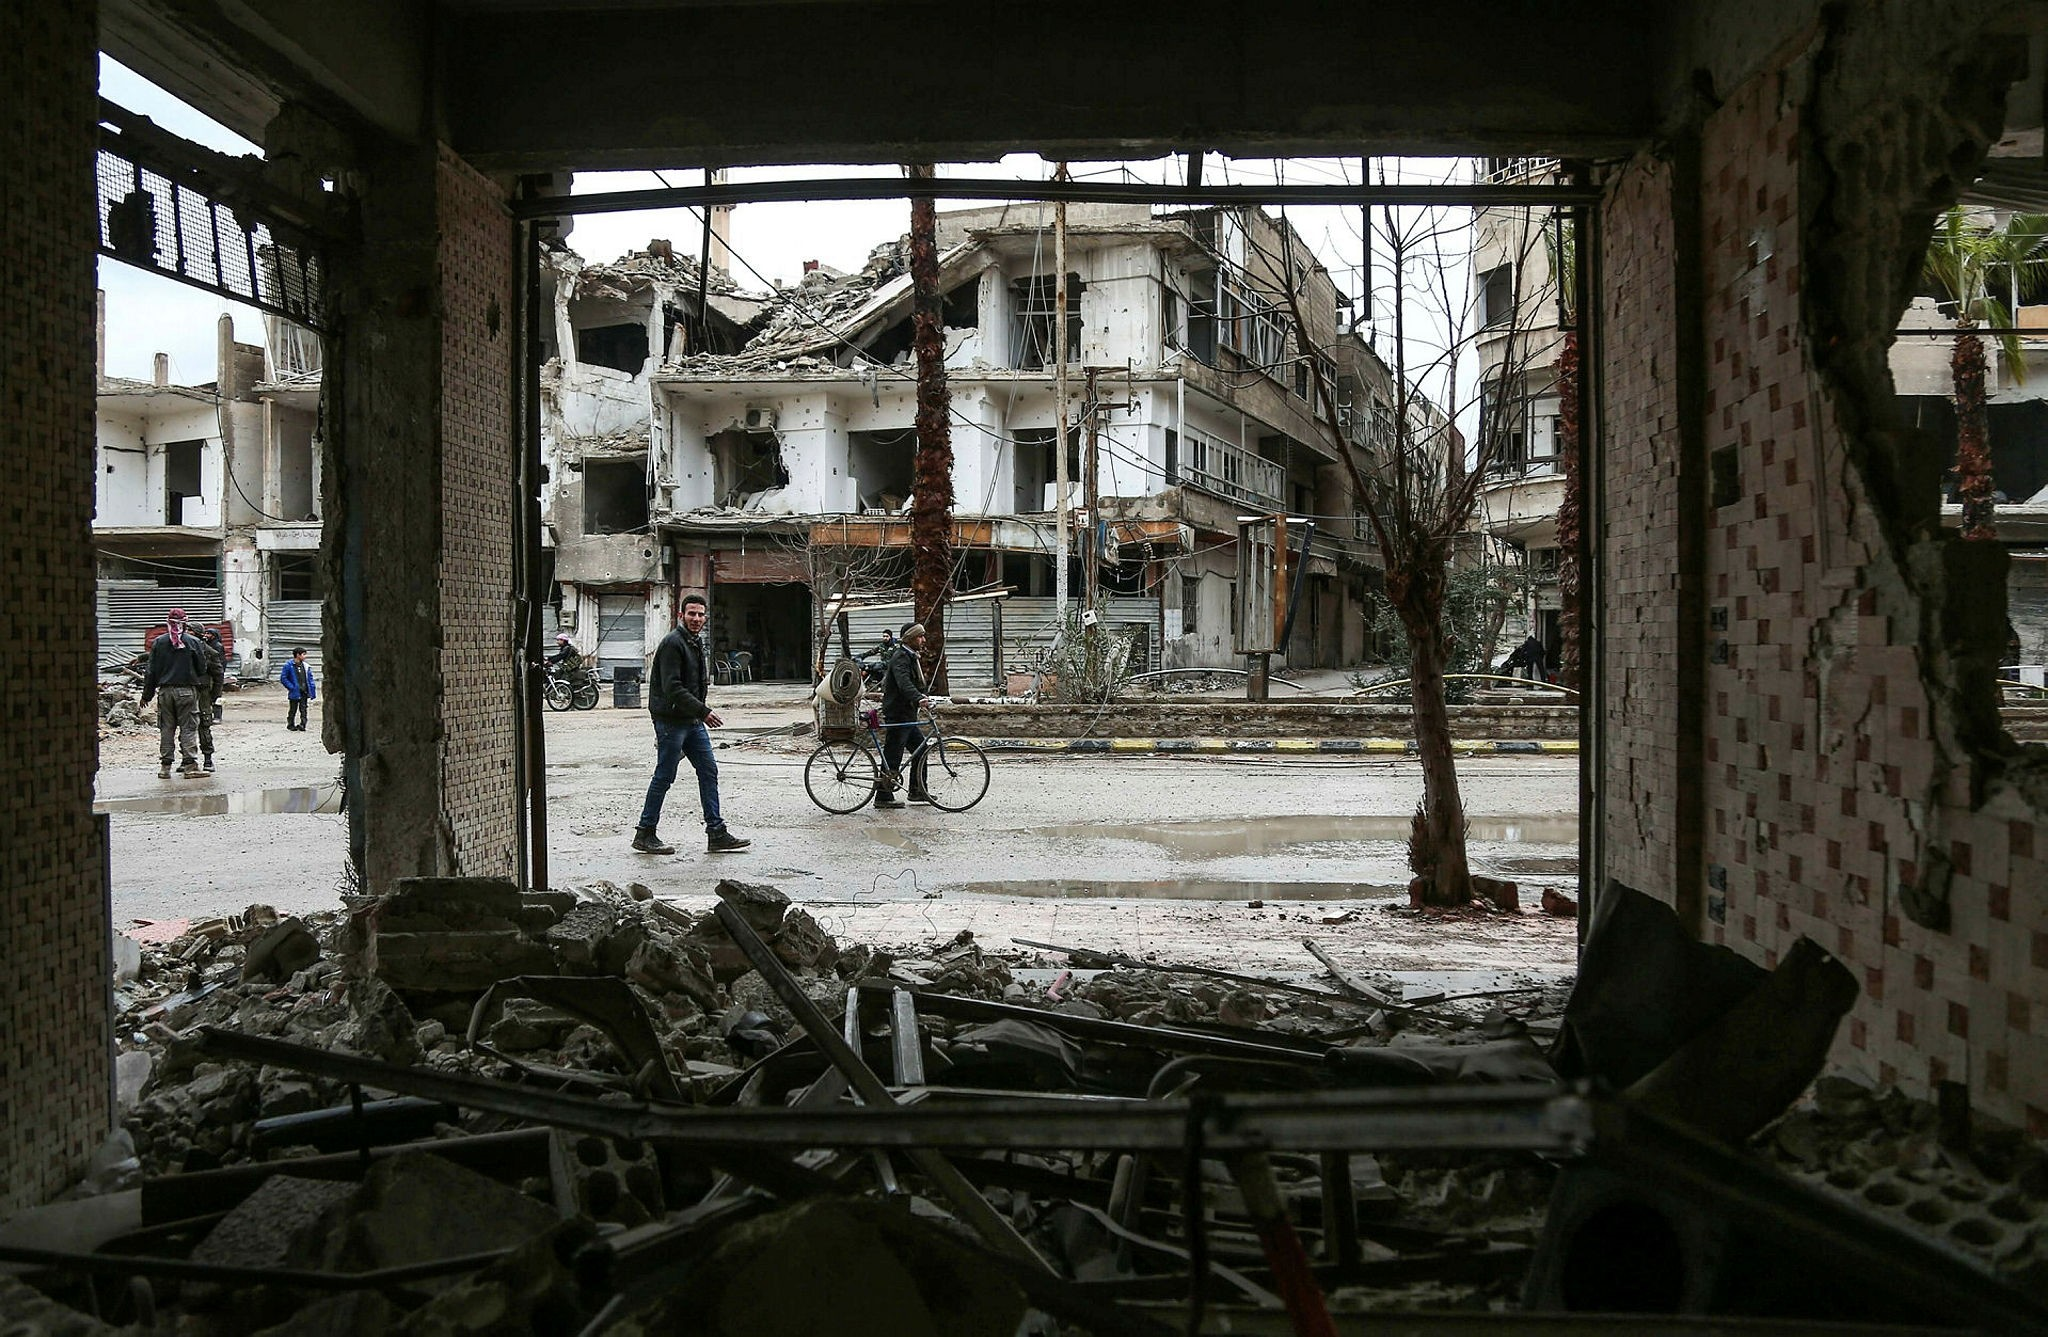 Civilians walking past ruins down a rain-soaked street in the Syrian opposition-held enclave of Arbin in Eastern Ghouta near Damascus, Feb. 17.